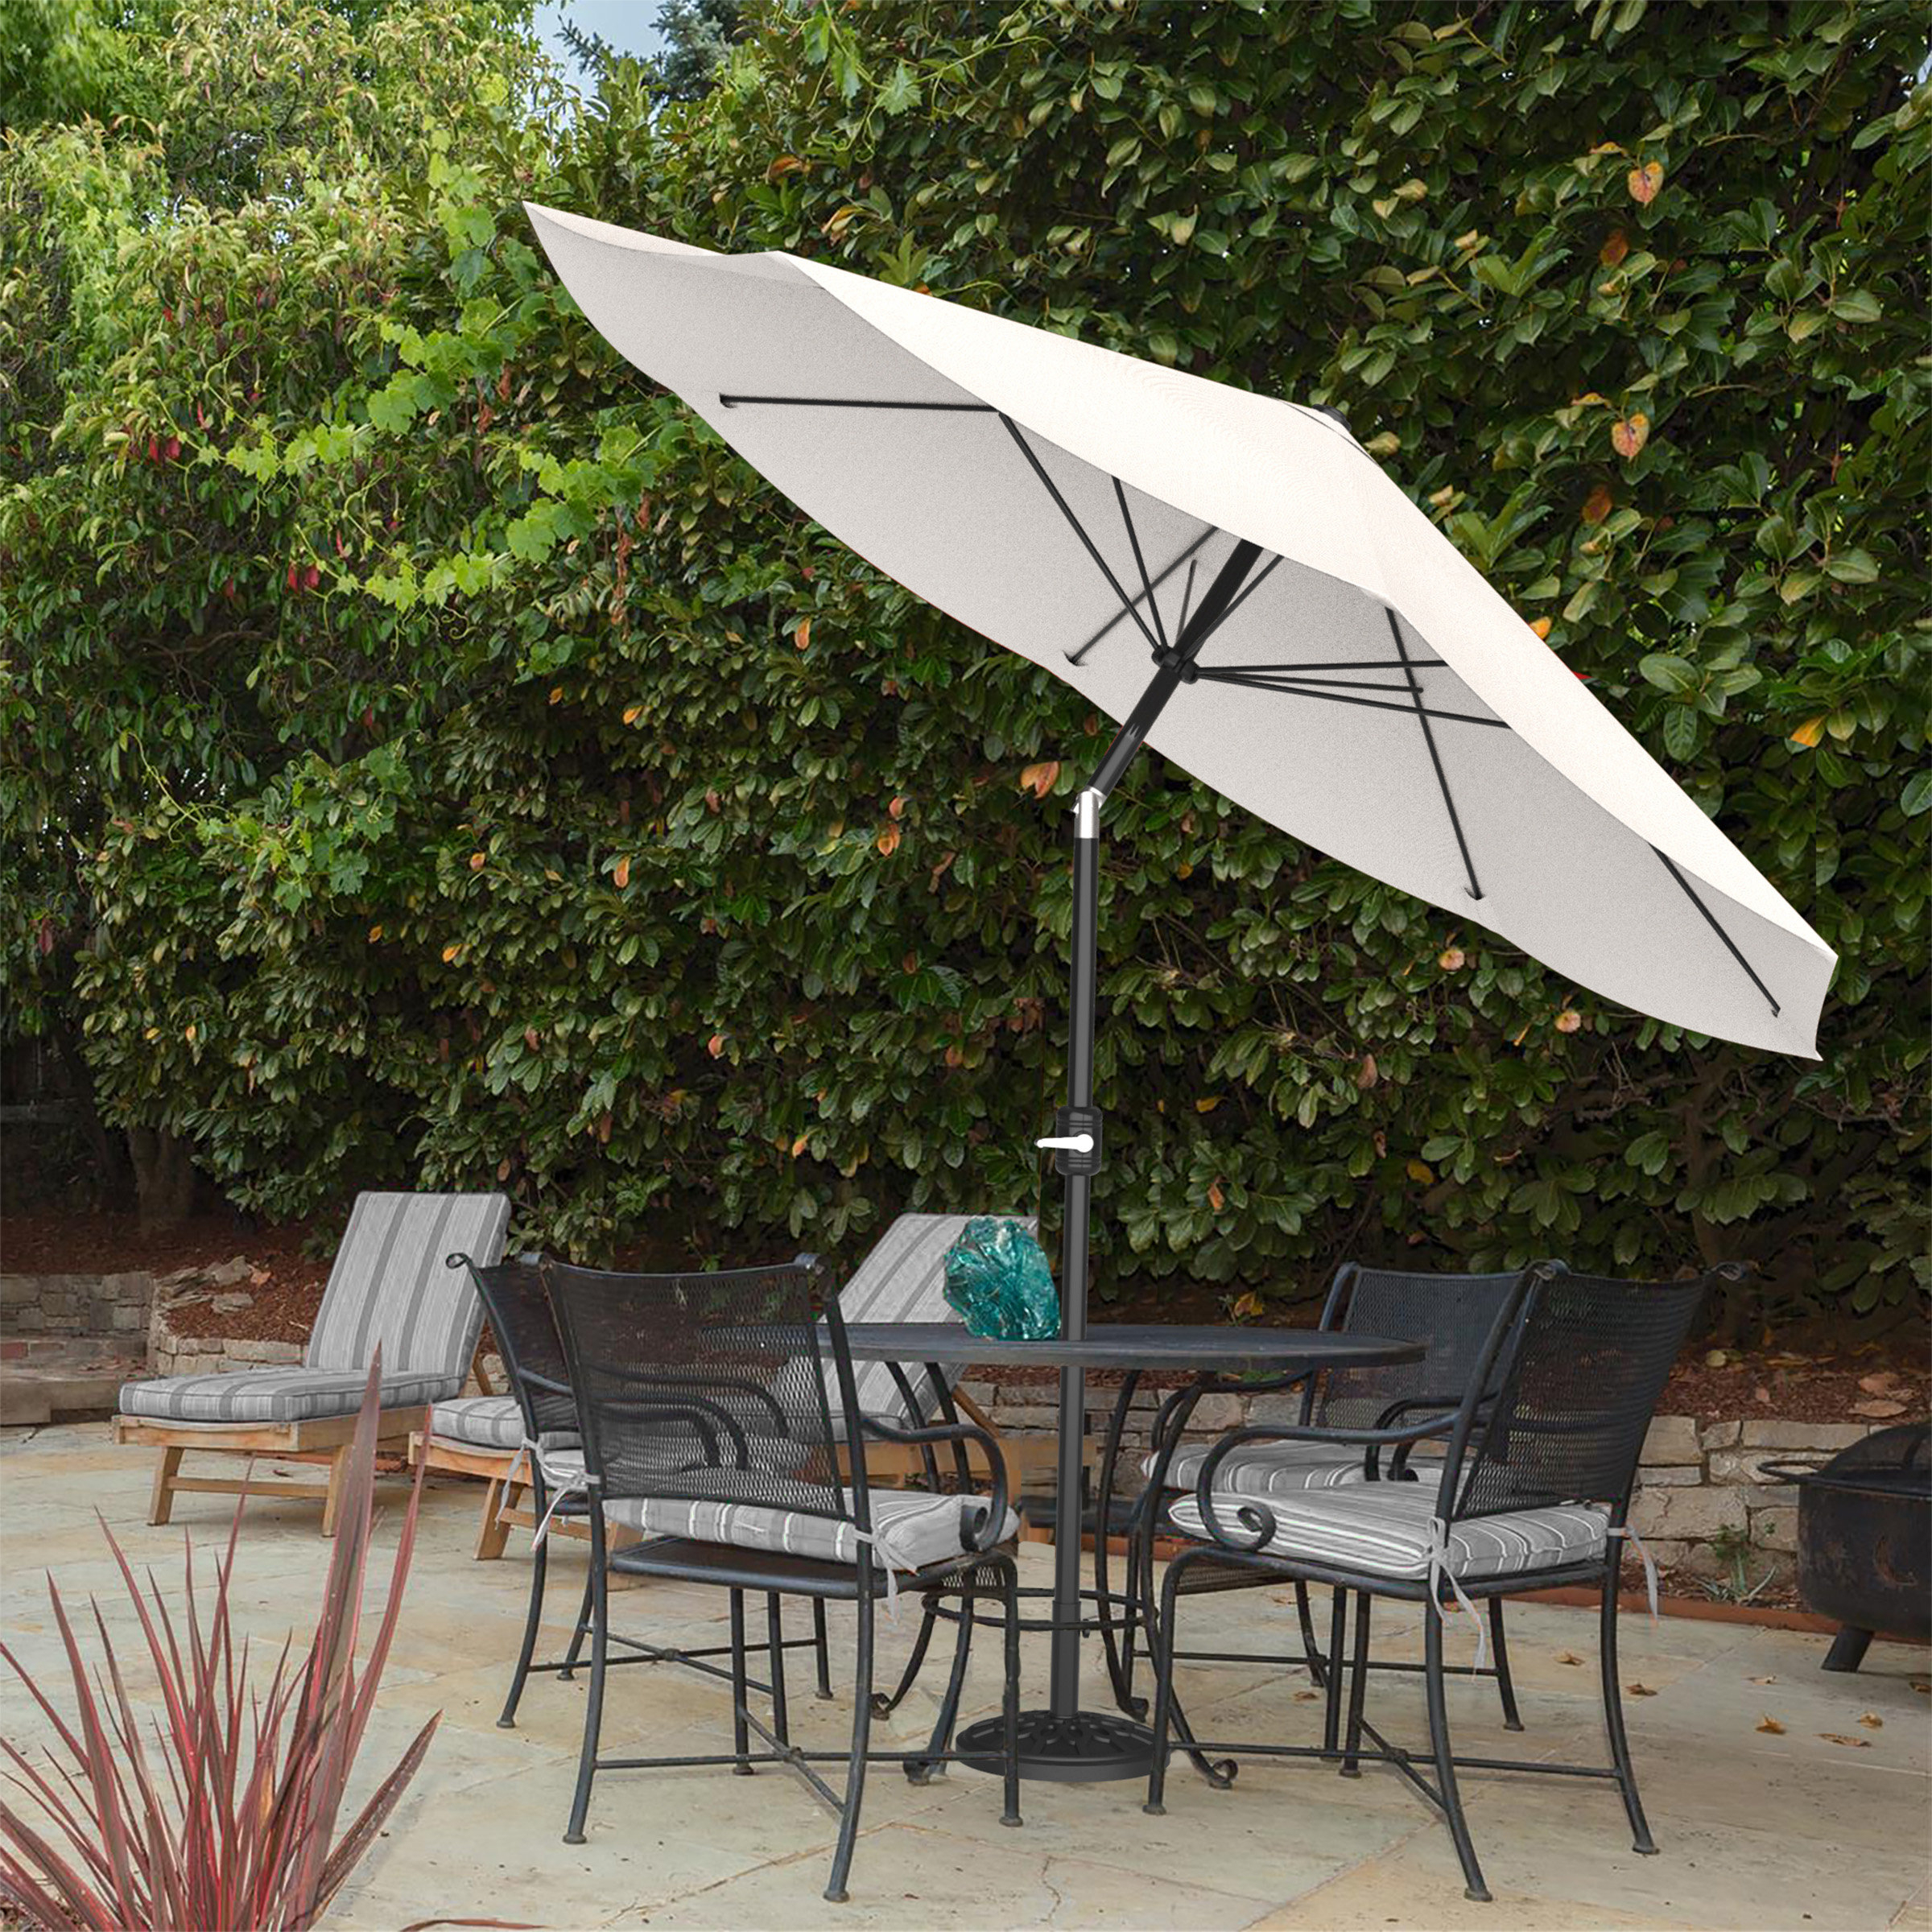 2020 Kelton 10' Market Umbrella Intended For Kelton Market Umbrellas (View 3 of 20)